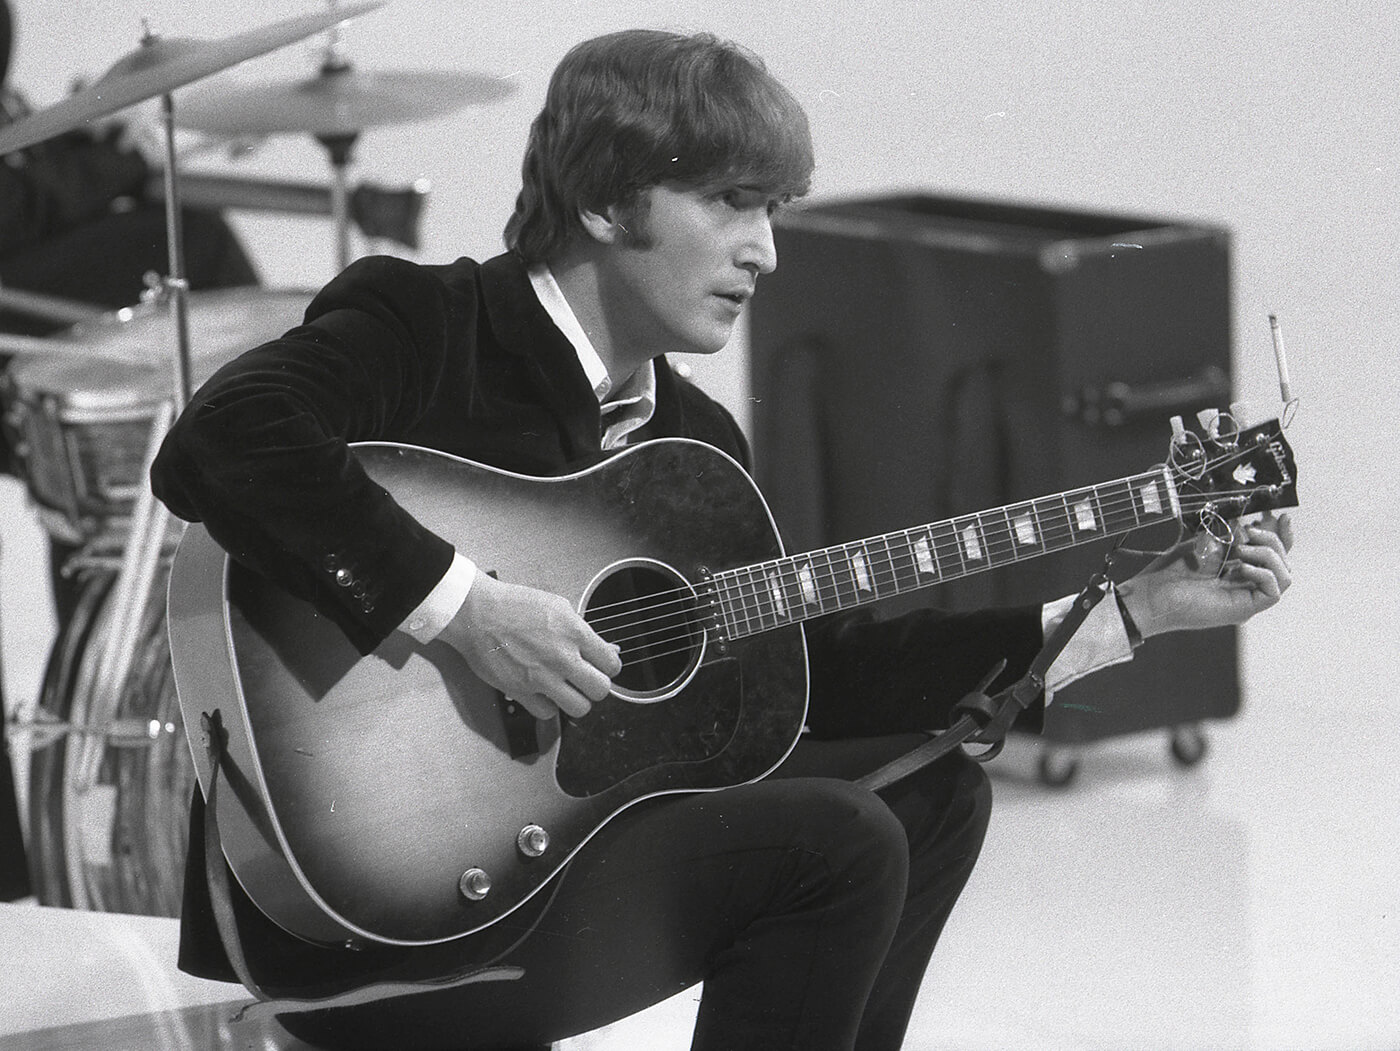 john lennon with his gibson j160e